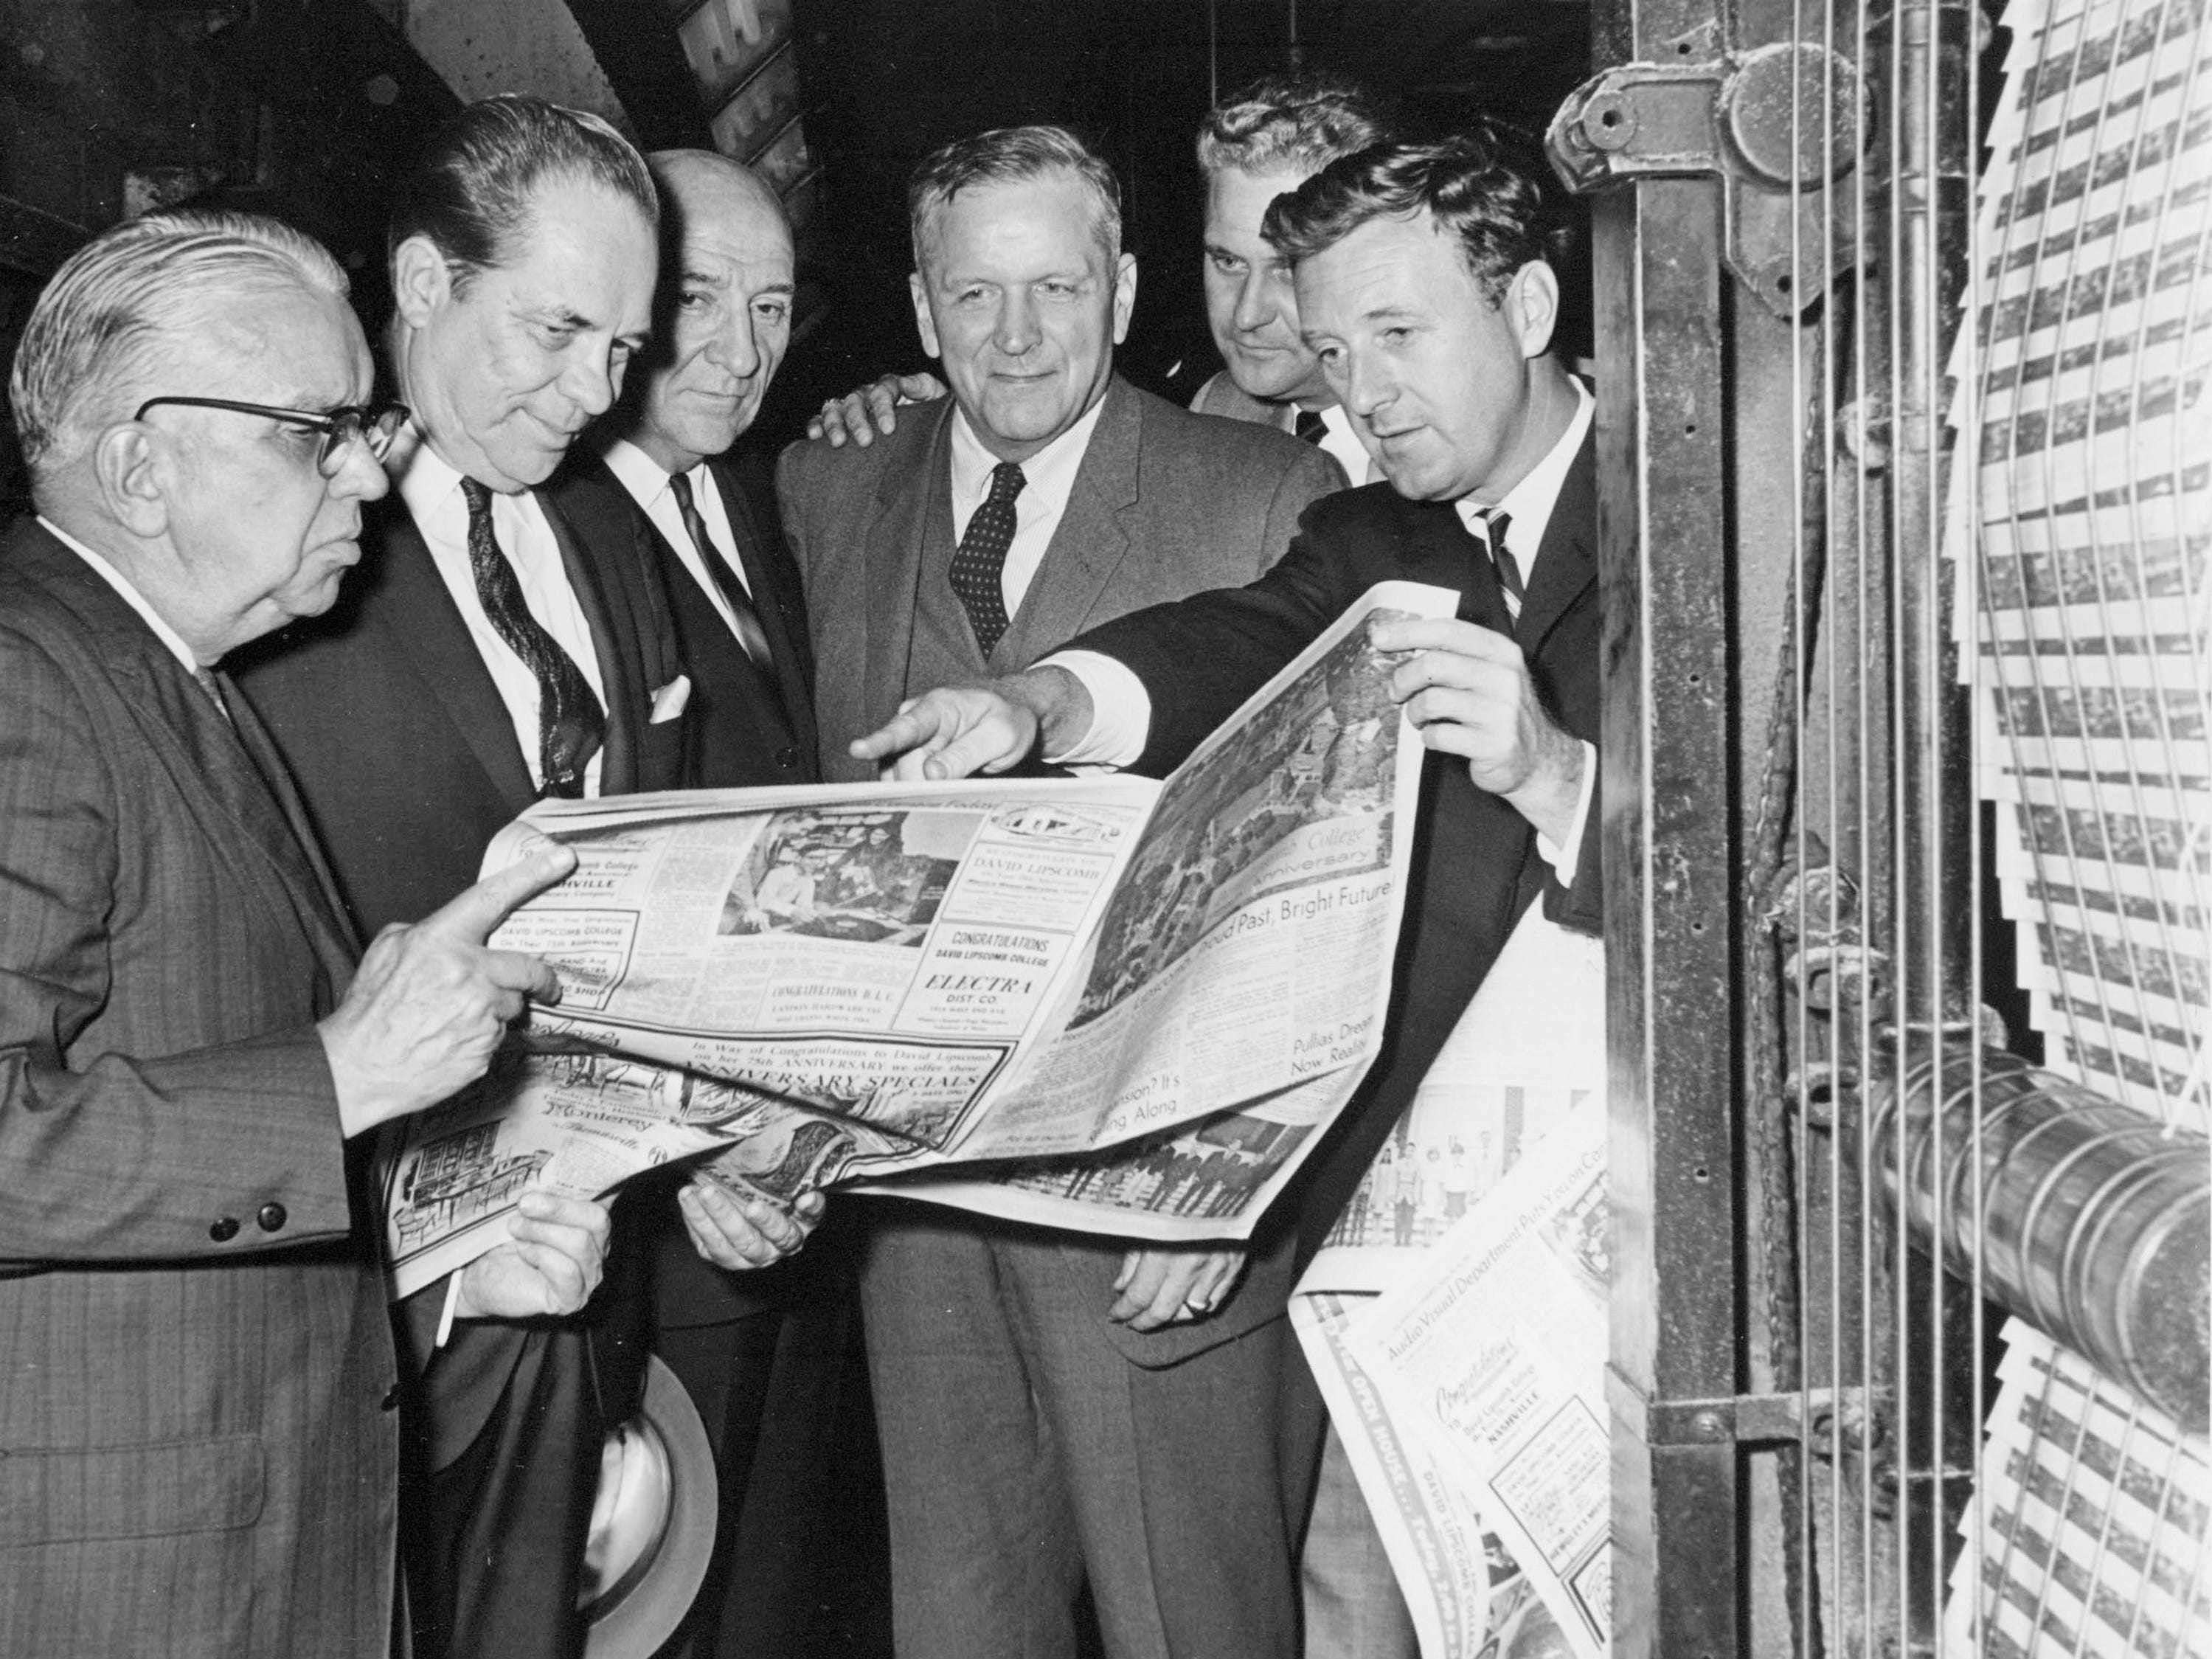 John Seigenthaler, right, editor of The Nashville Tennessean, points out a feature Oct. 8, 1966, in a special section celebrating David Lipscomb College's 75th anniversary. Looking at the first issue to roll off the presses are G. W. Churchill, left, editor of the section; Lipscomb Vice President Willard Collins; Athens Clay Pullias, president of the school; James Armistead, vice president and advertising director of Newspaper Printing Corp.; and Pete Wright, assistant advertising director.